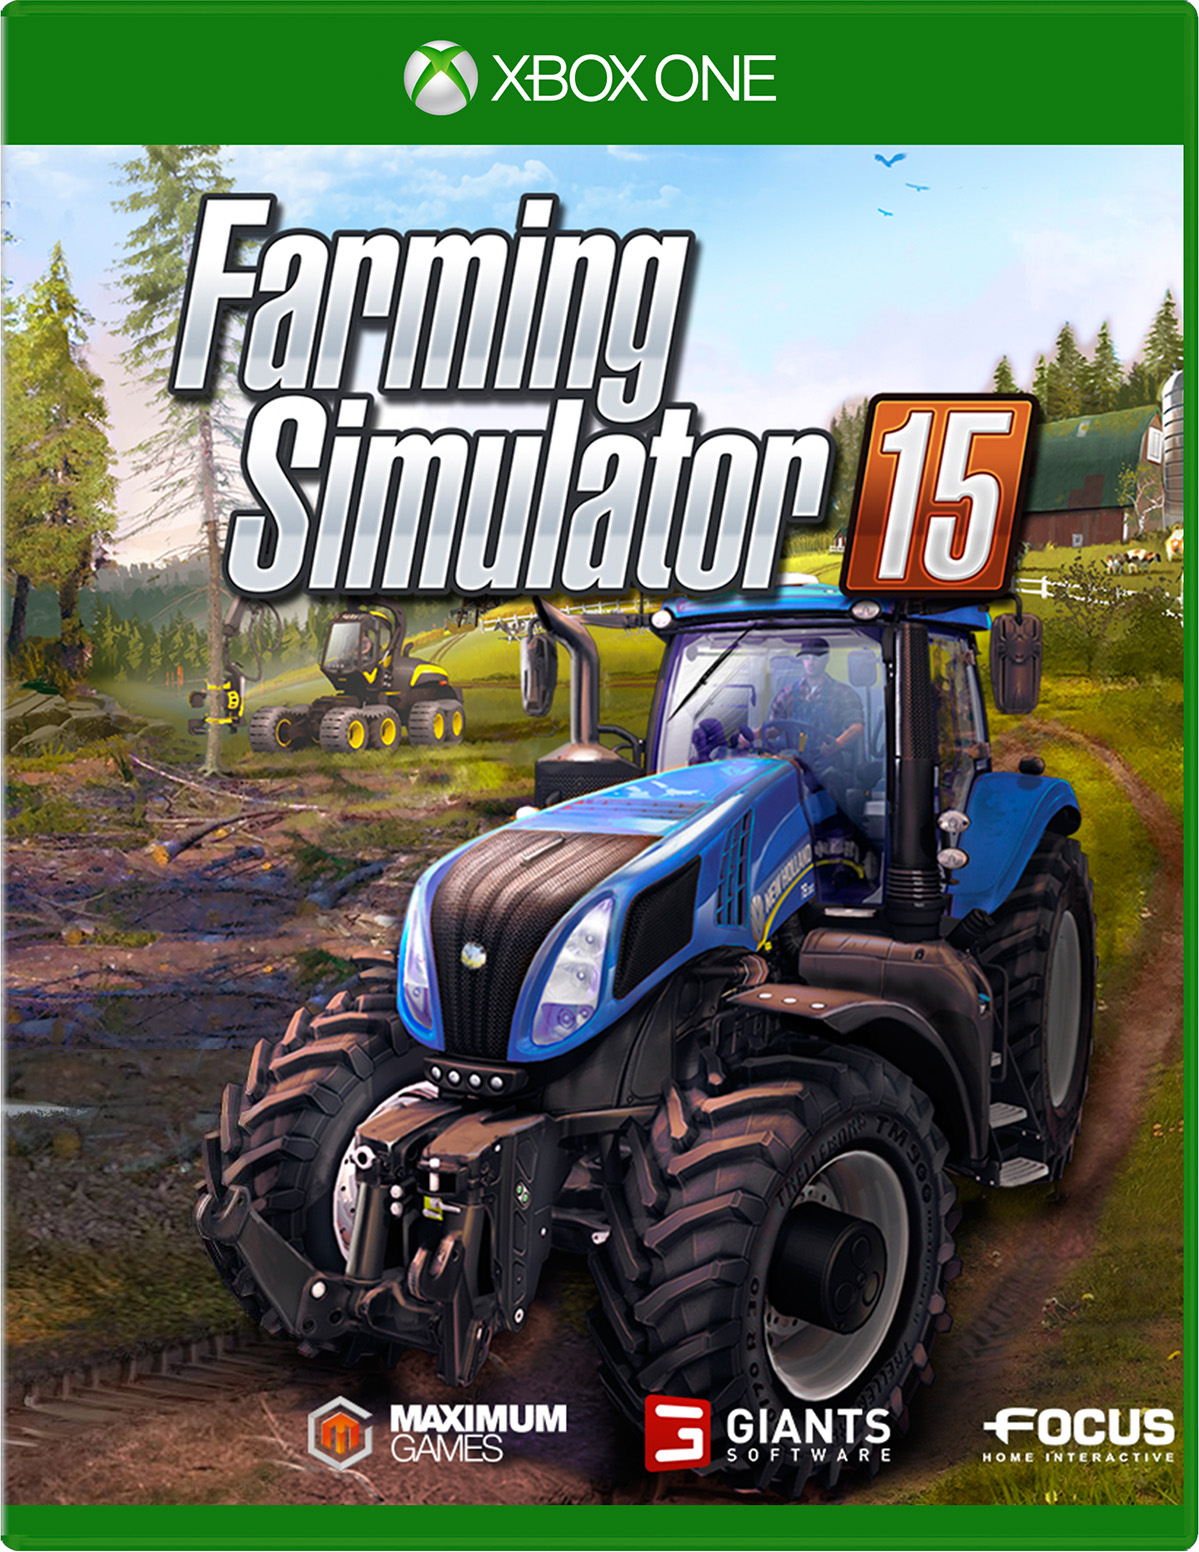 Farming Simulator 15 for Xbox One Deal